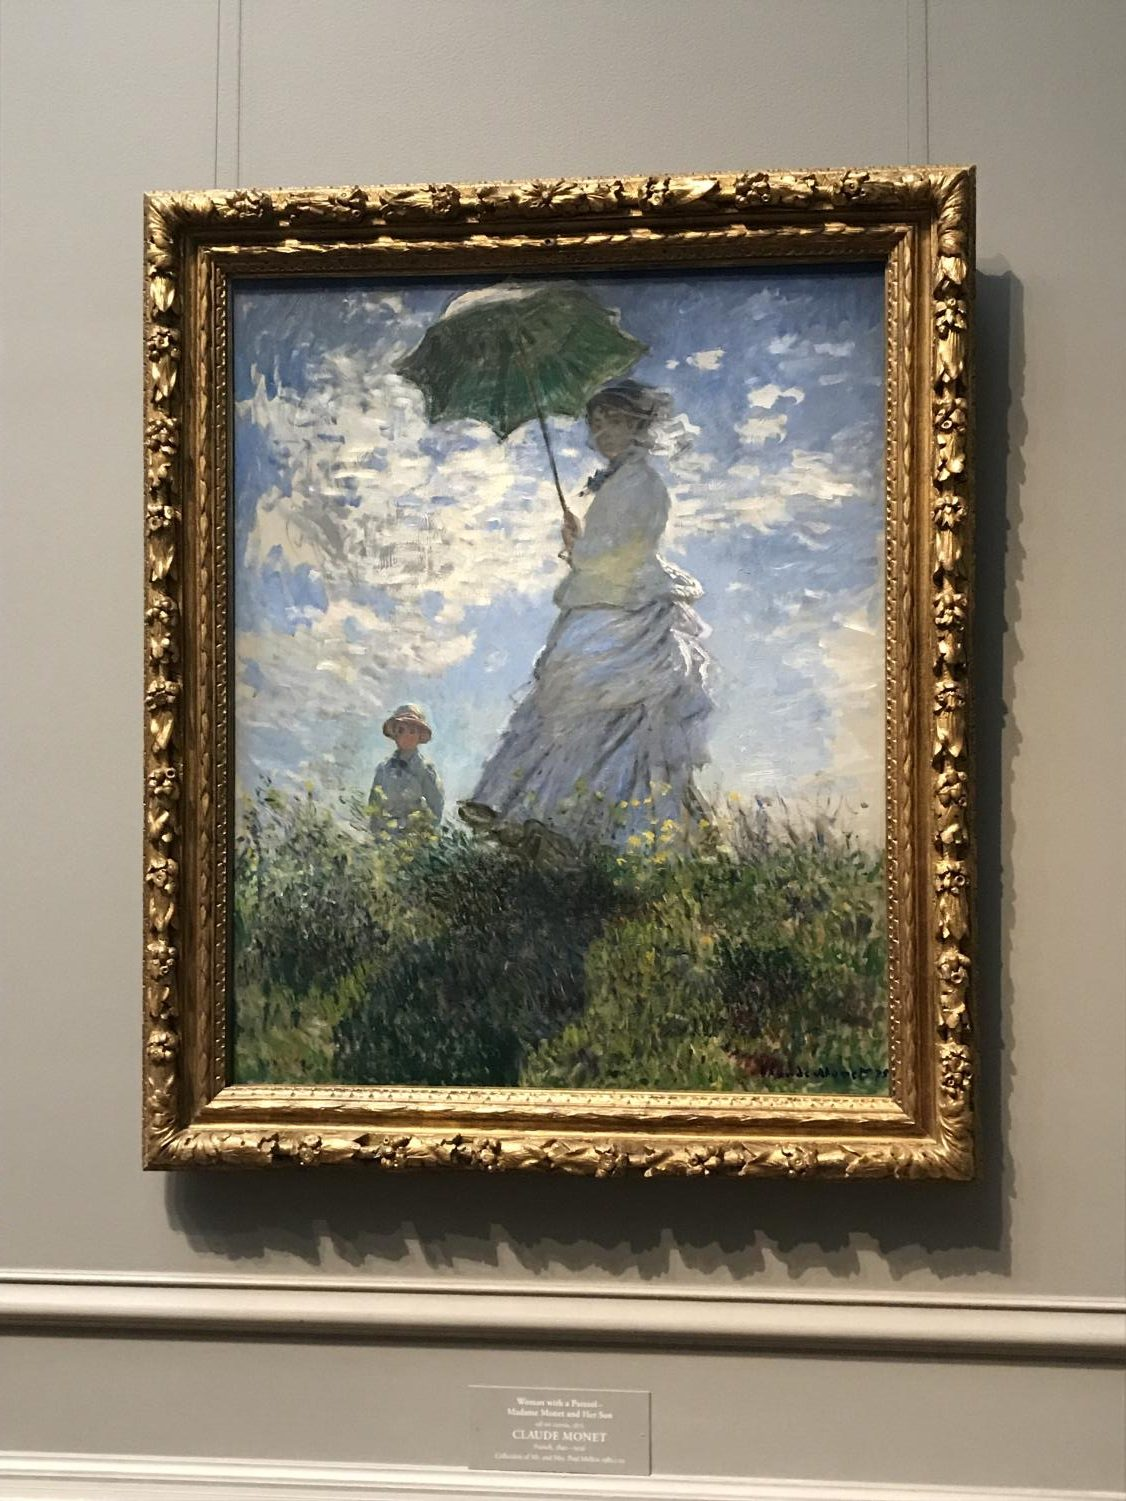 Women+with+a+Parasol%2C+painted+by+Claude+Monet.+